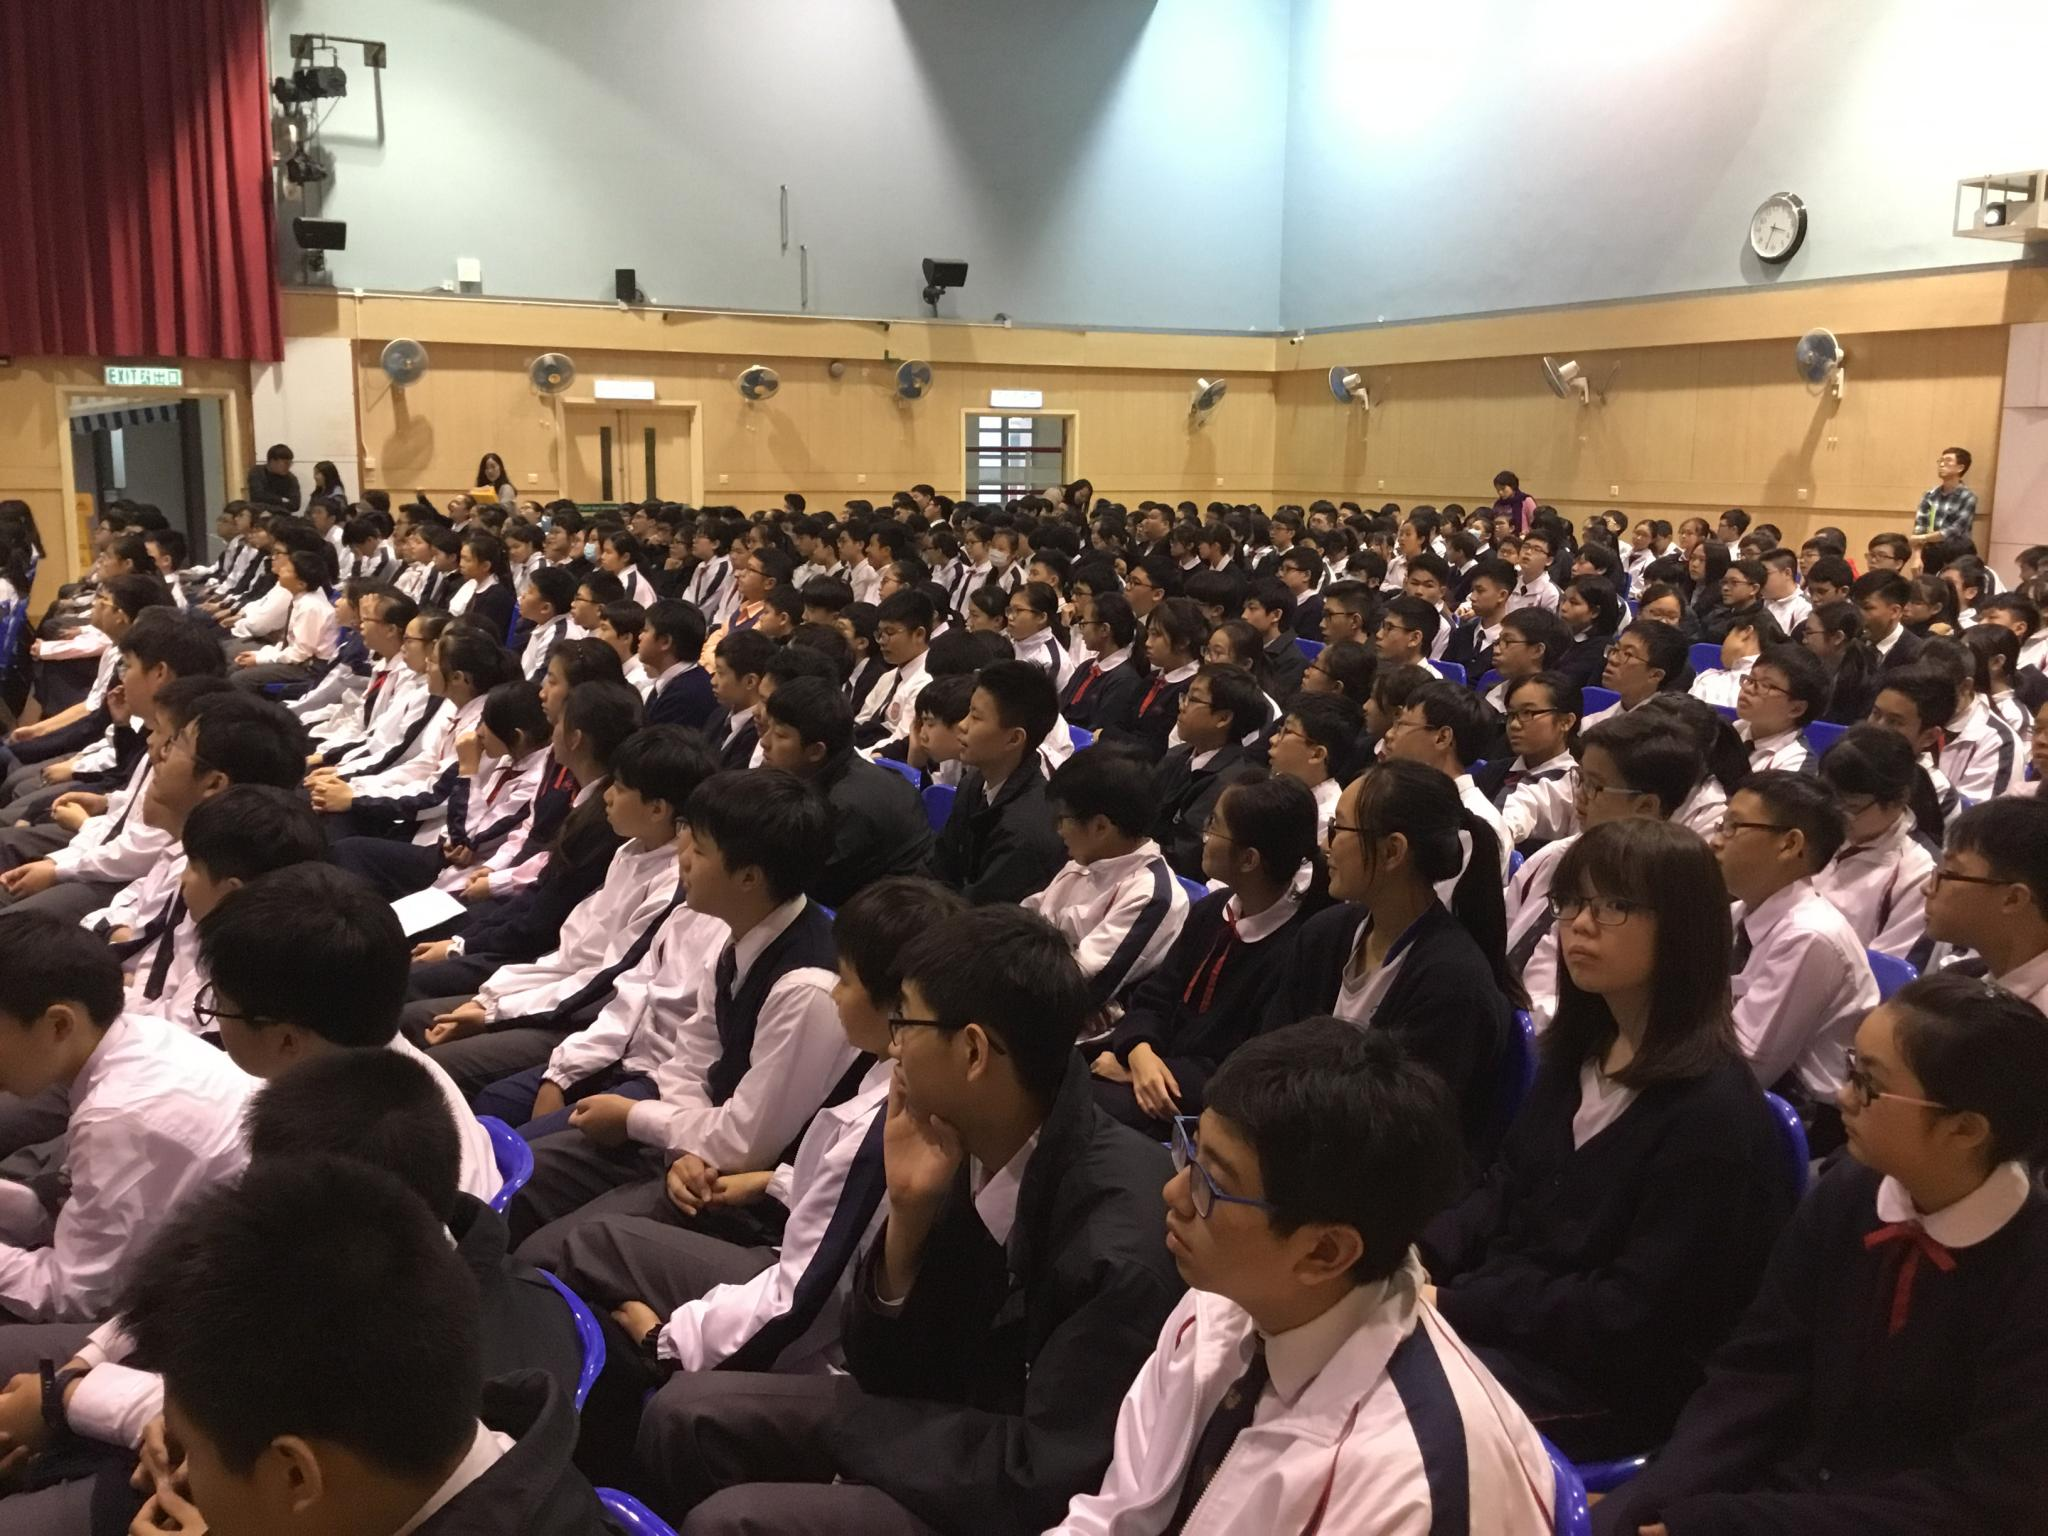 The whole school students needed to attend the talk to get equipped with more knowledge about environmental protection.